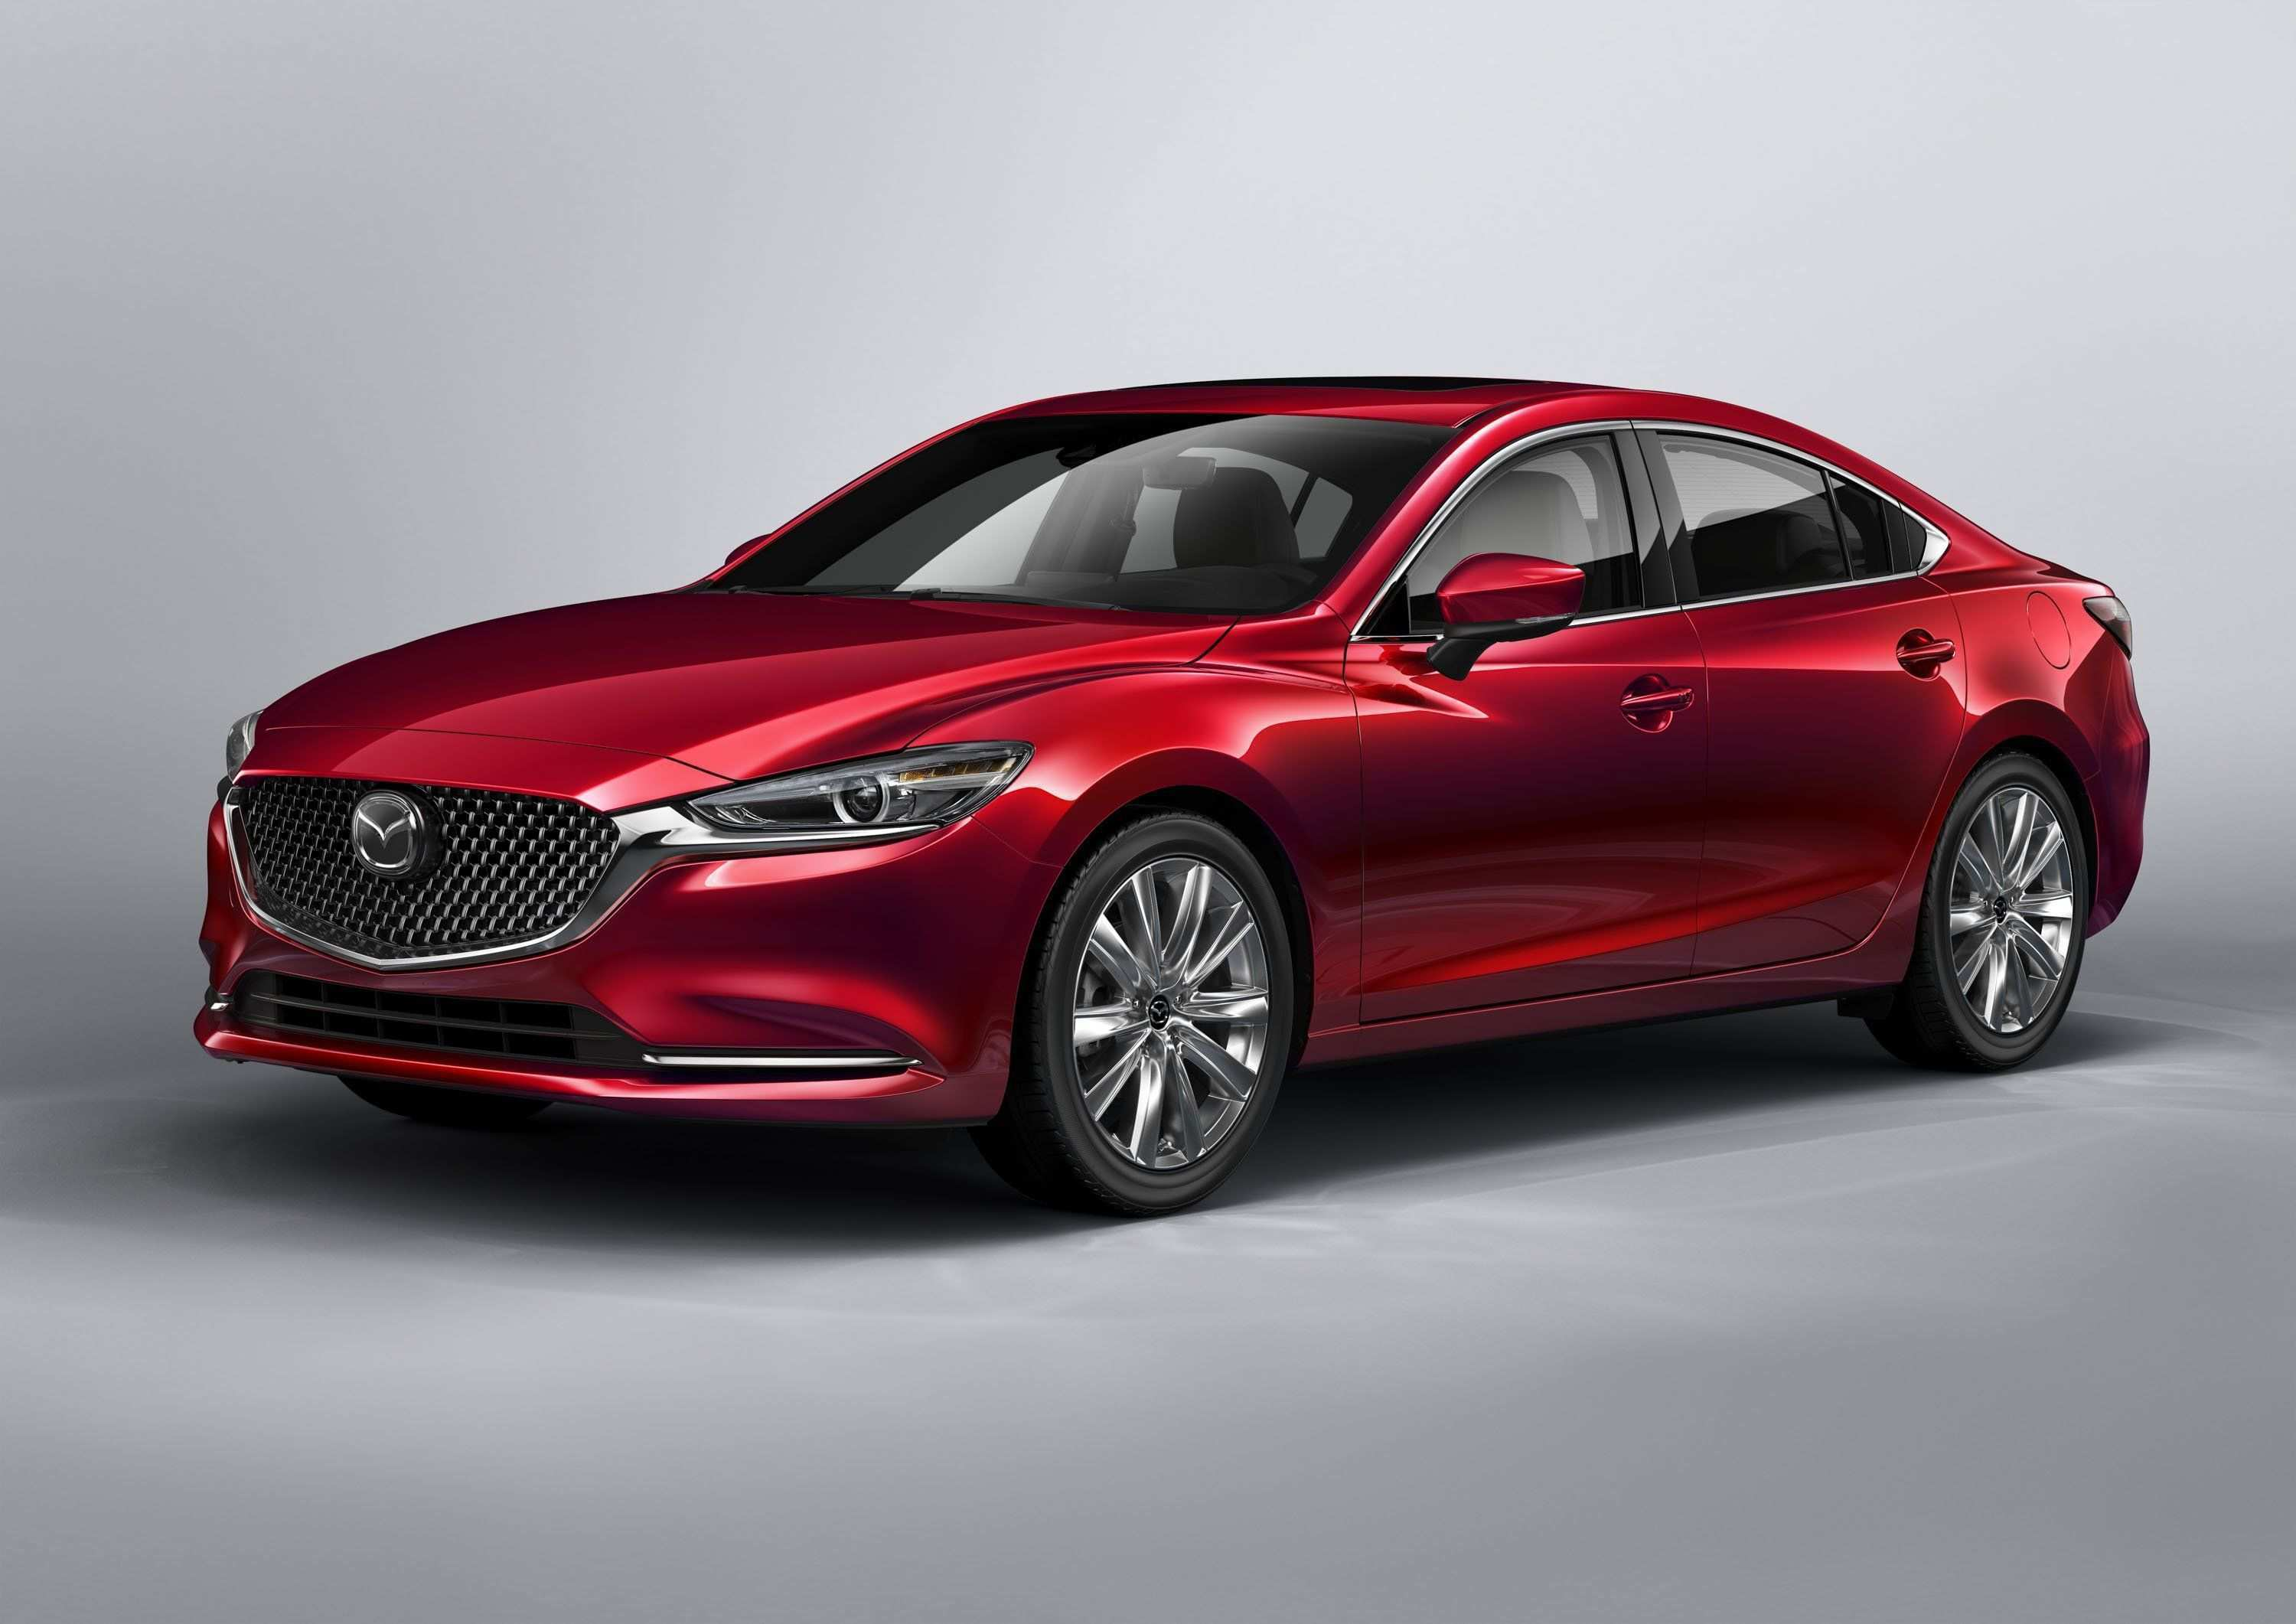 55 Best 2019 Mazda 6 Turbo 0 60 Wallpaper